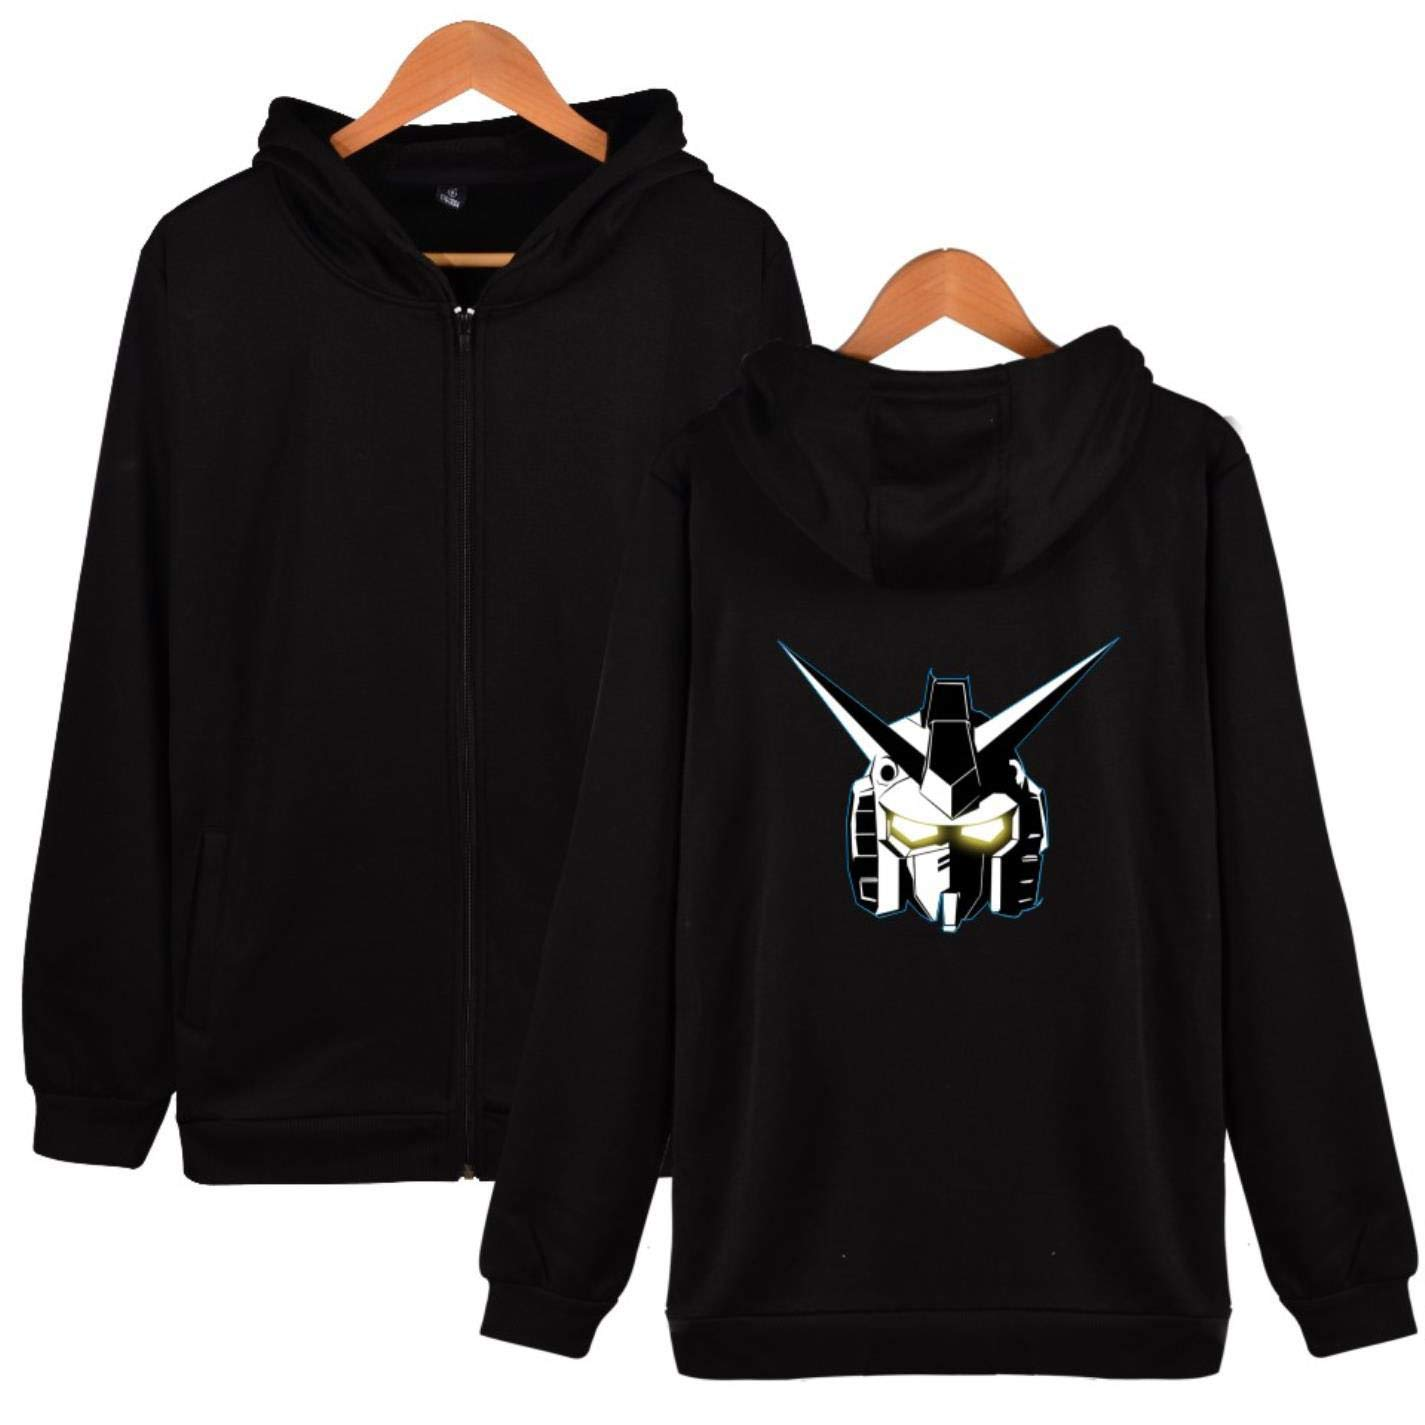 BWWX Anime Printed Hoodie Sweatshirt Men Women Zipper Tracksuit Model at Amazon Womens Clothing store: